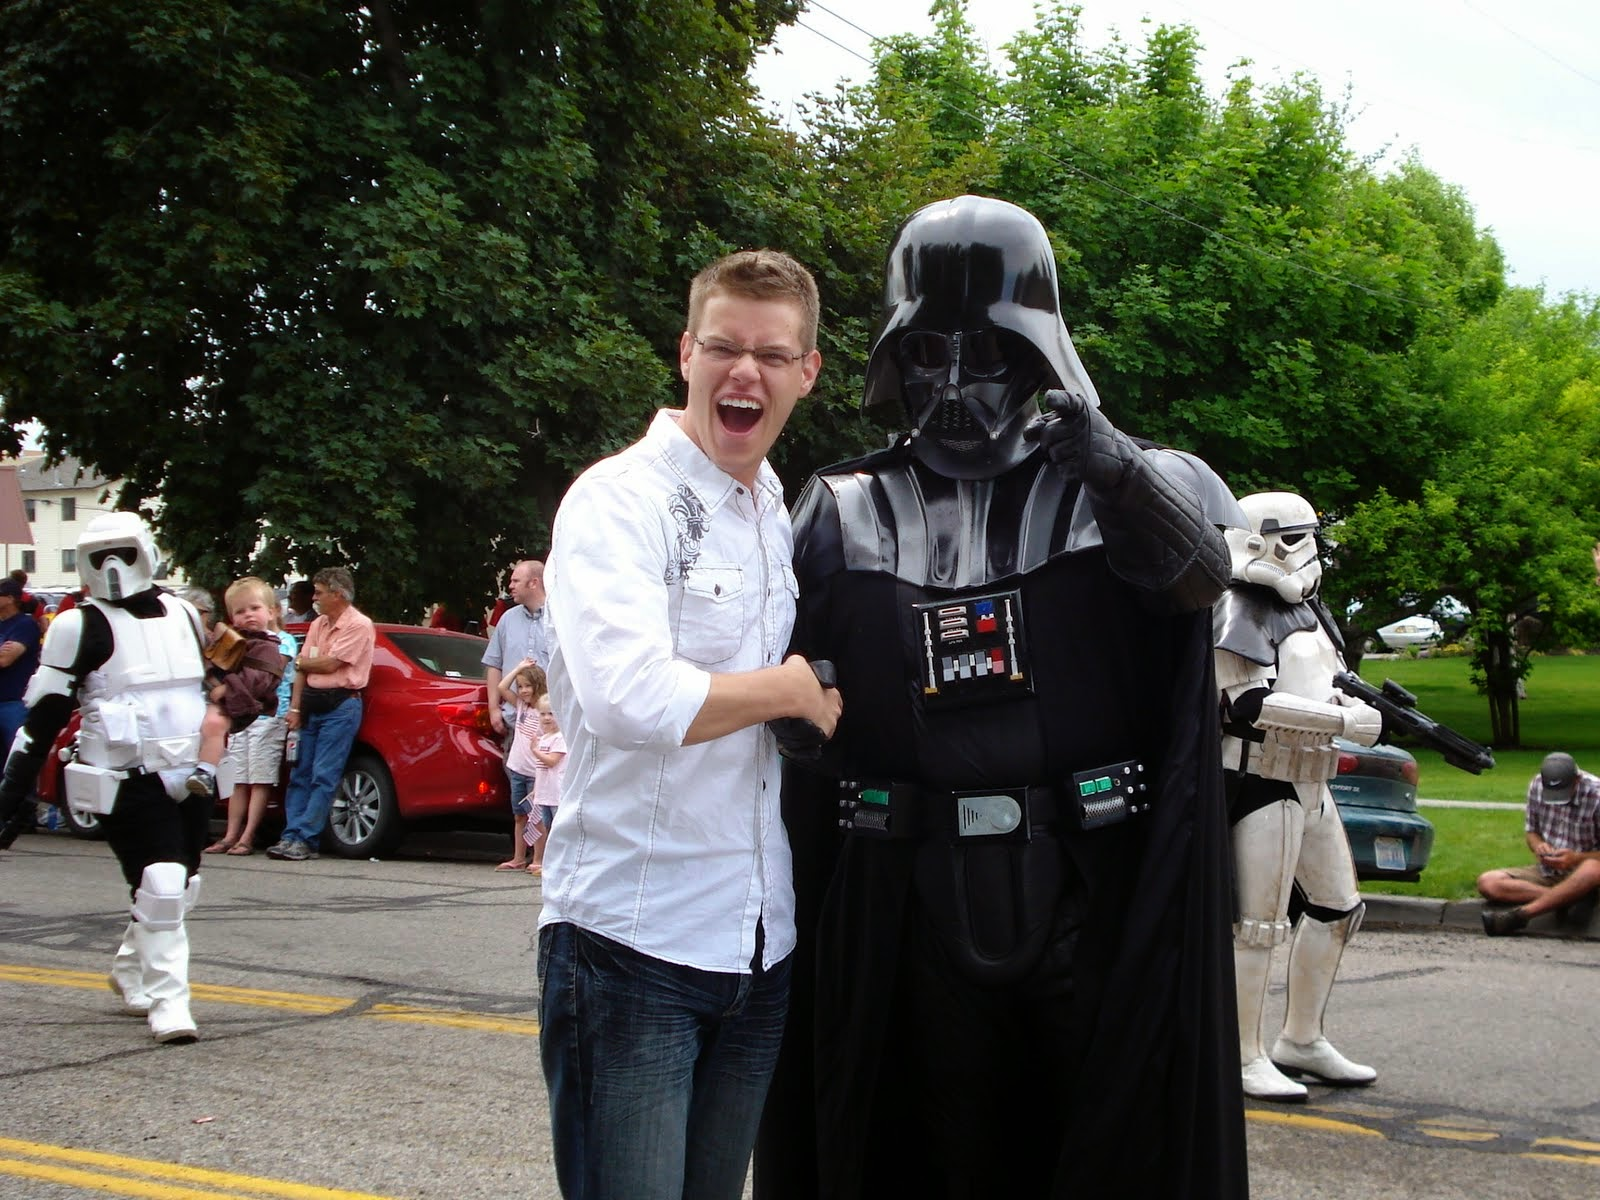 ... and I'm friends with Darth Vader